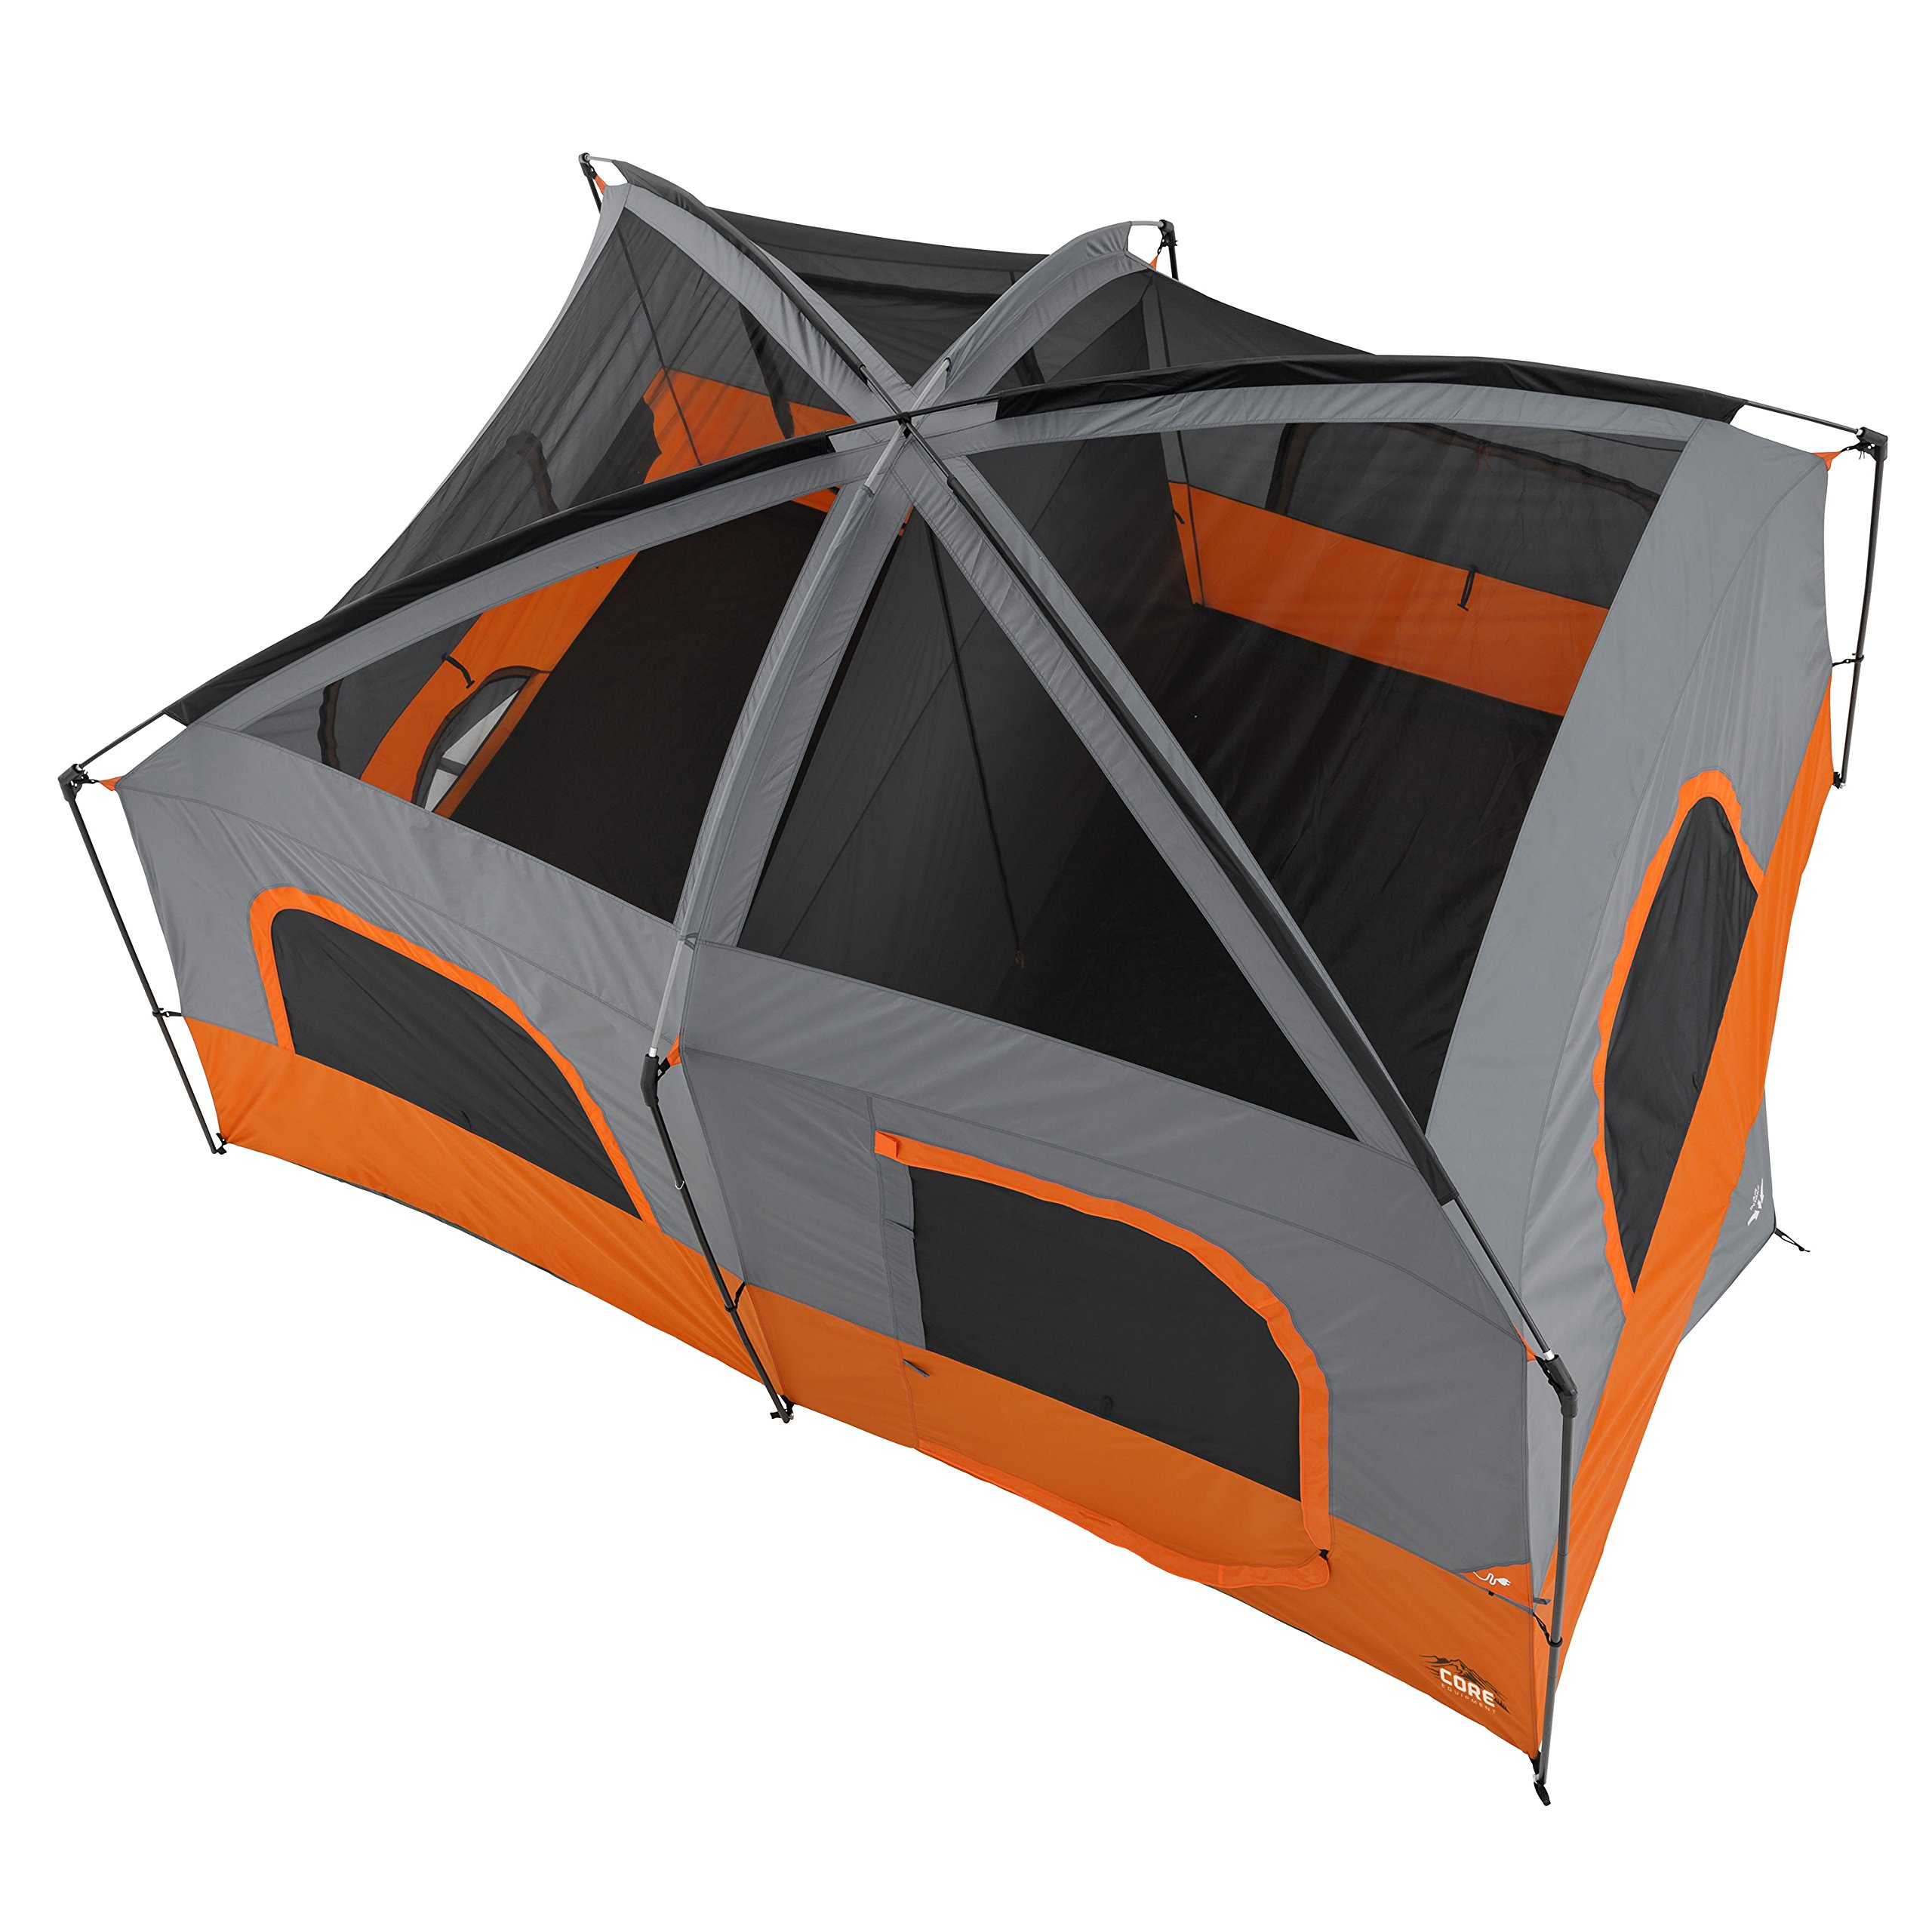 CORE 10 Person Straight Wall Cabin Tent - 14' x 10' by CORE (Image #5)